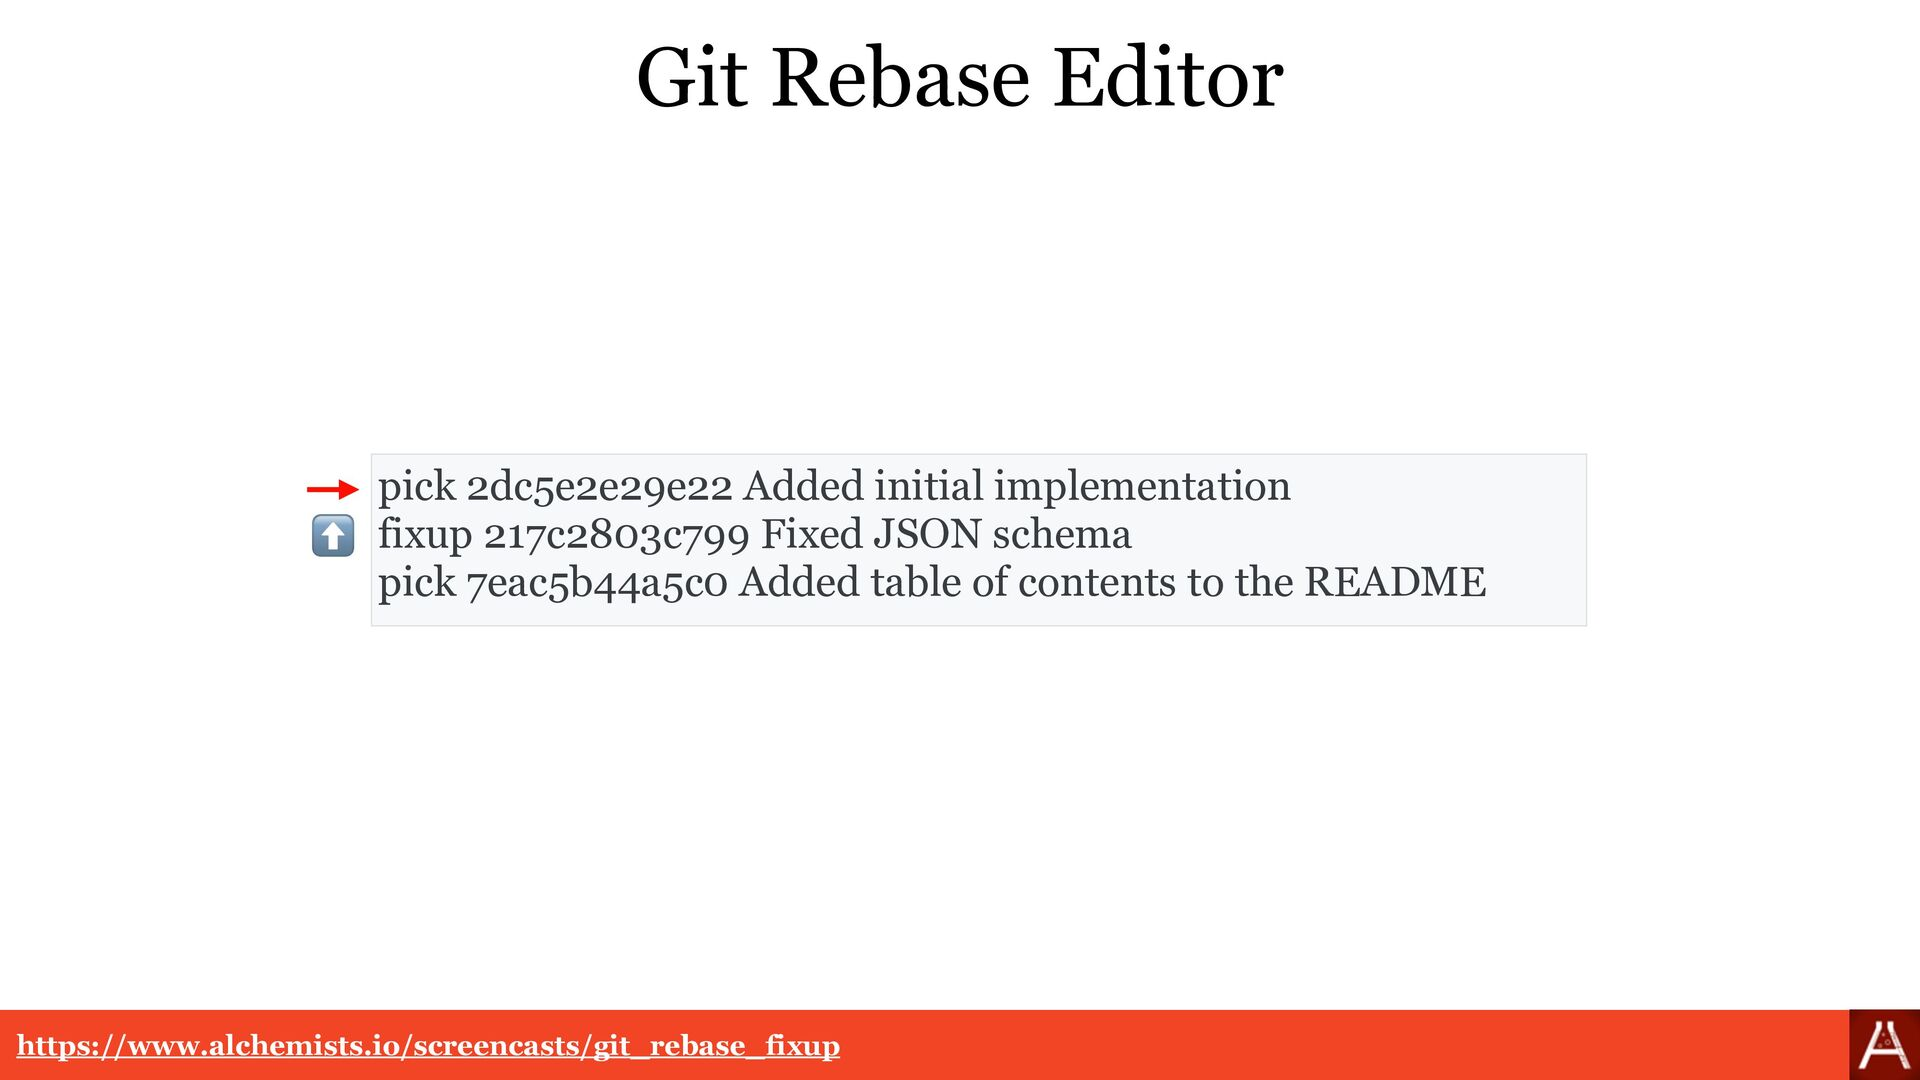 Git Rebase Exec https://www.alchemists.io/scree...